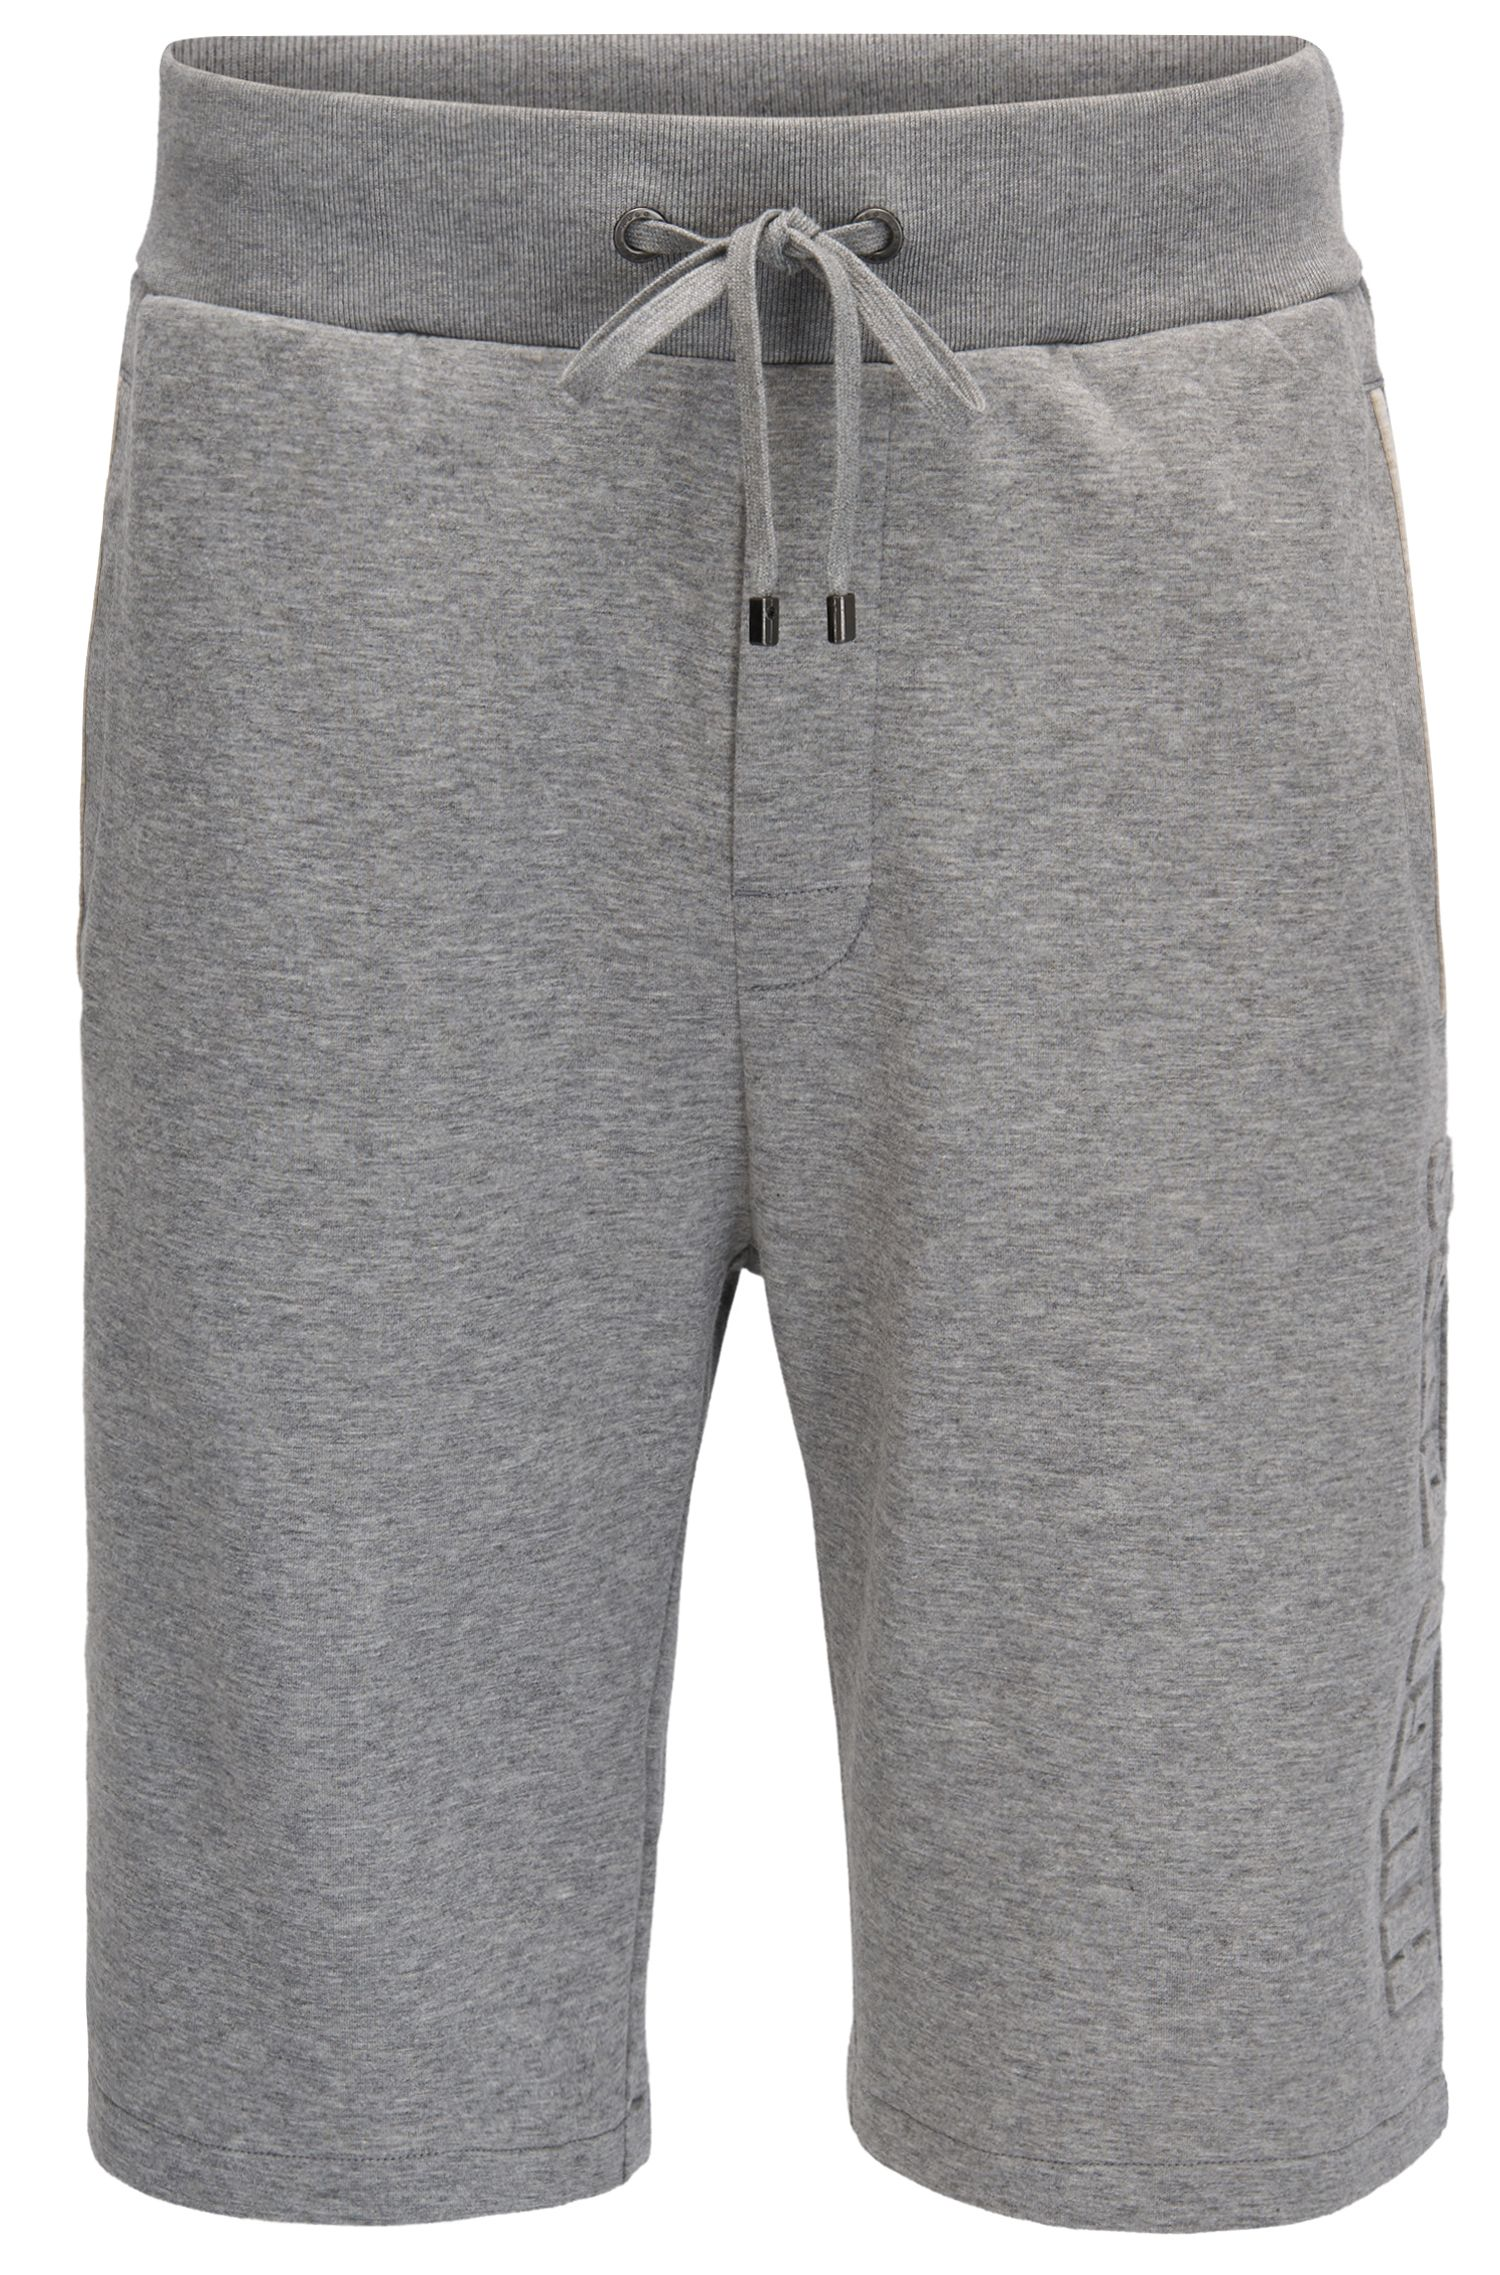 Loungewear shorts in a double-face cotton blend